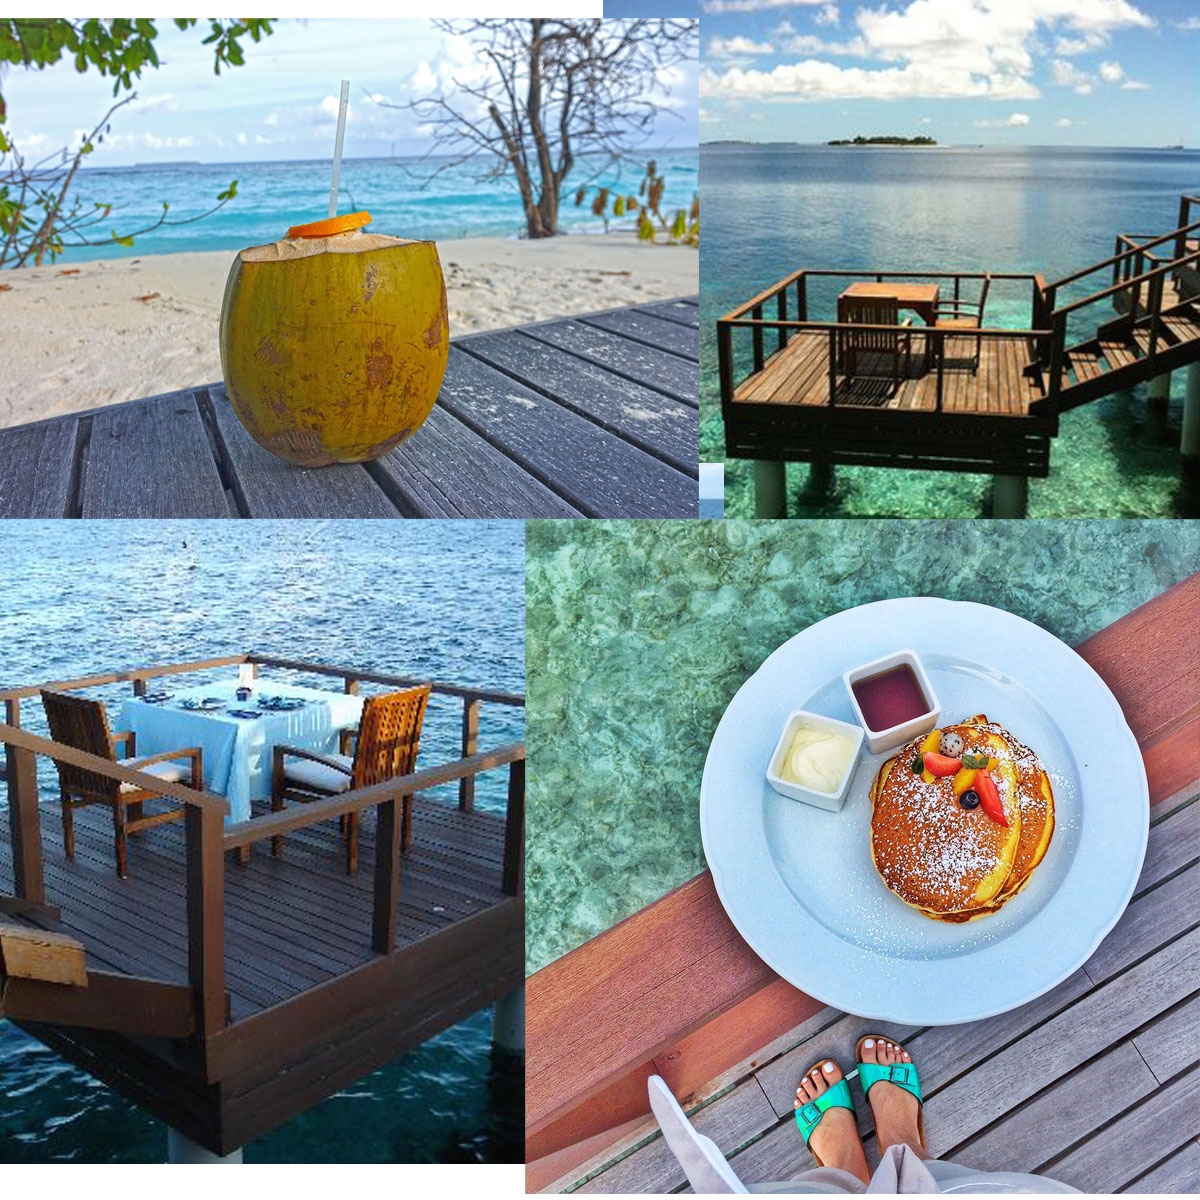 Maldives_Coco_Bodu_Hithi_Aug_2015_elleiconlee_travel_48